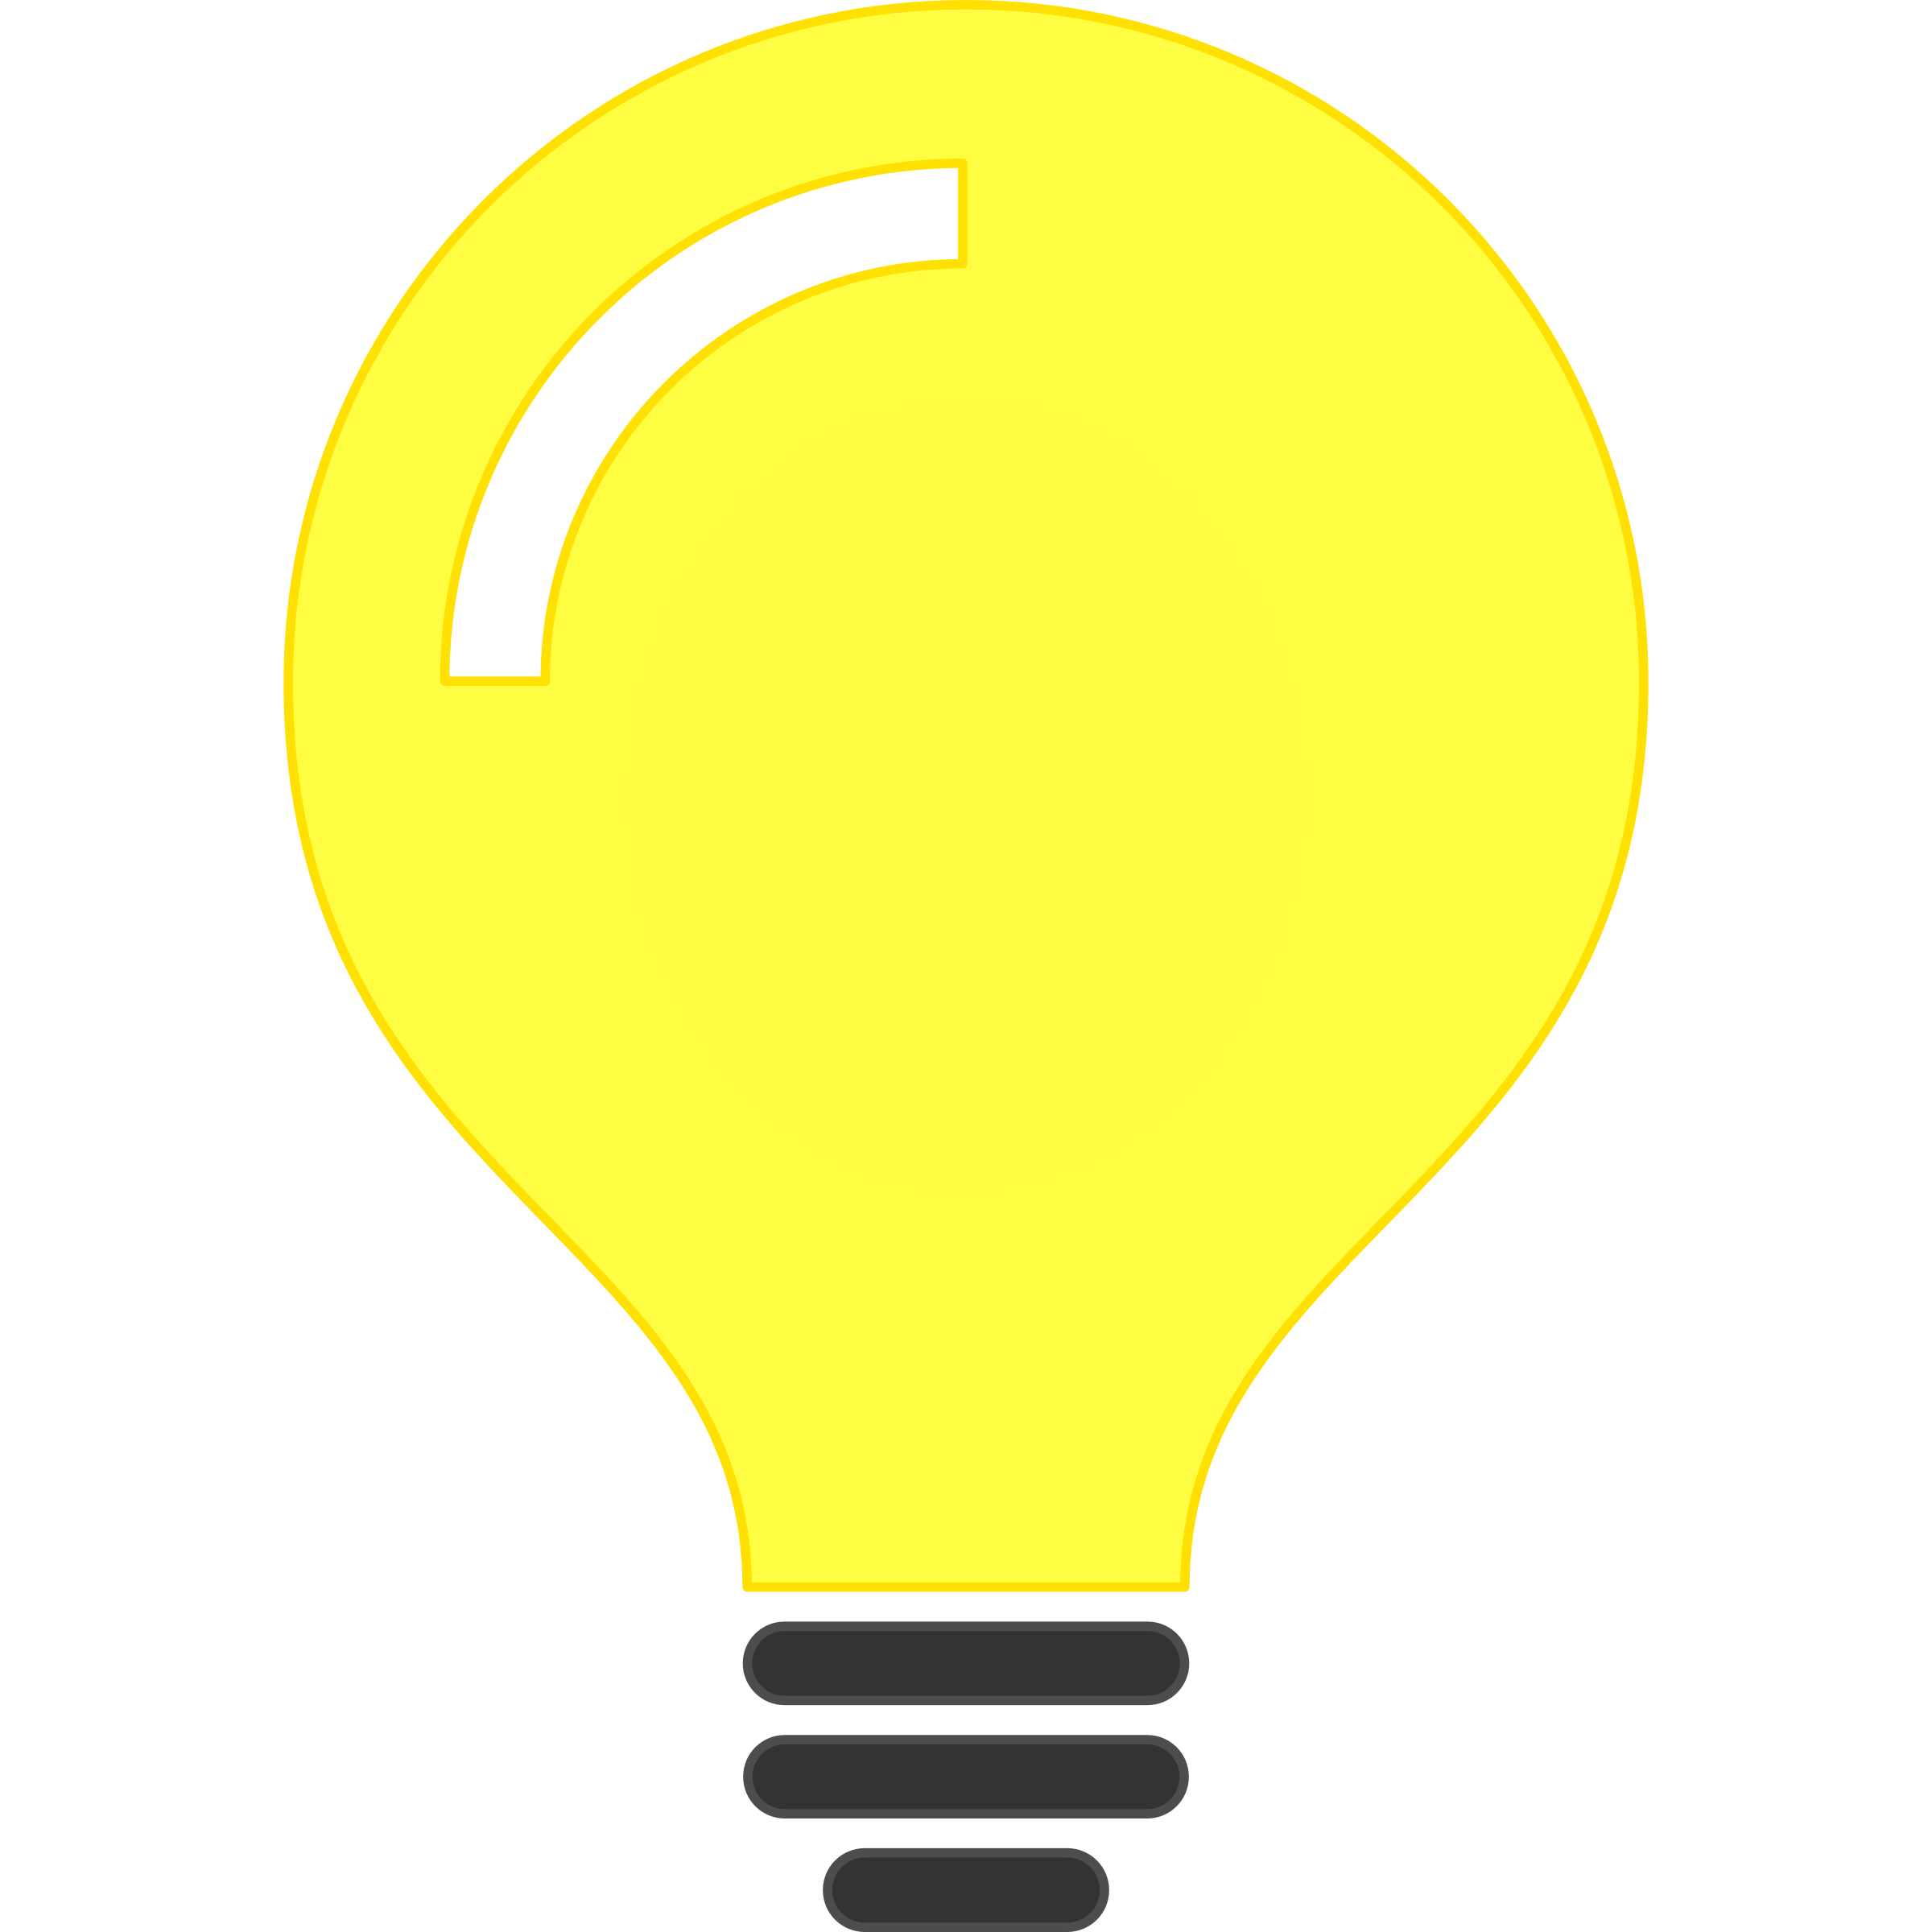 Lamp clipart bright. Idea light bulb png